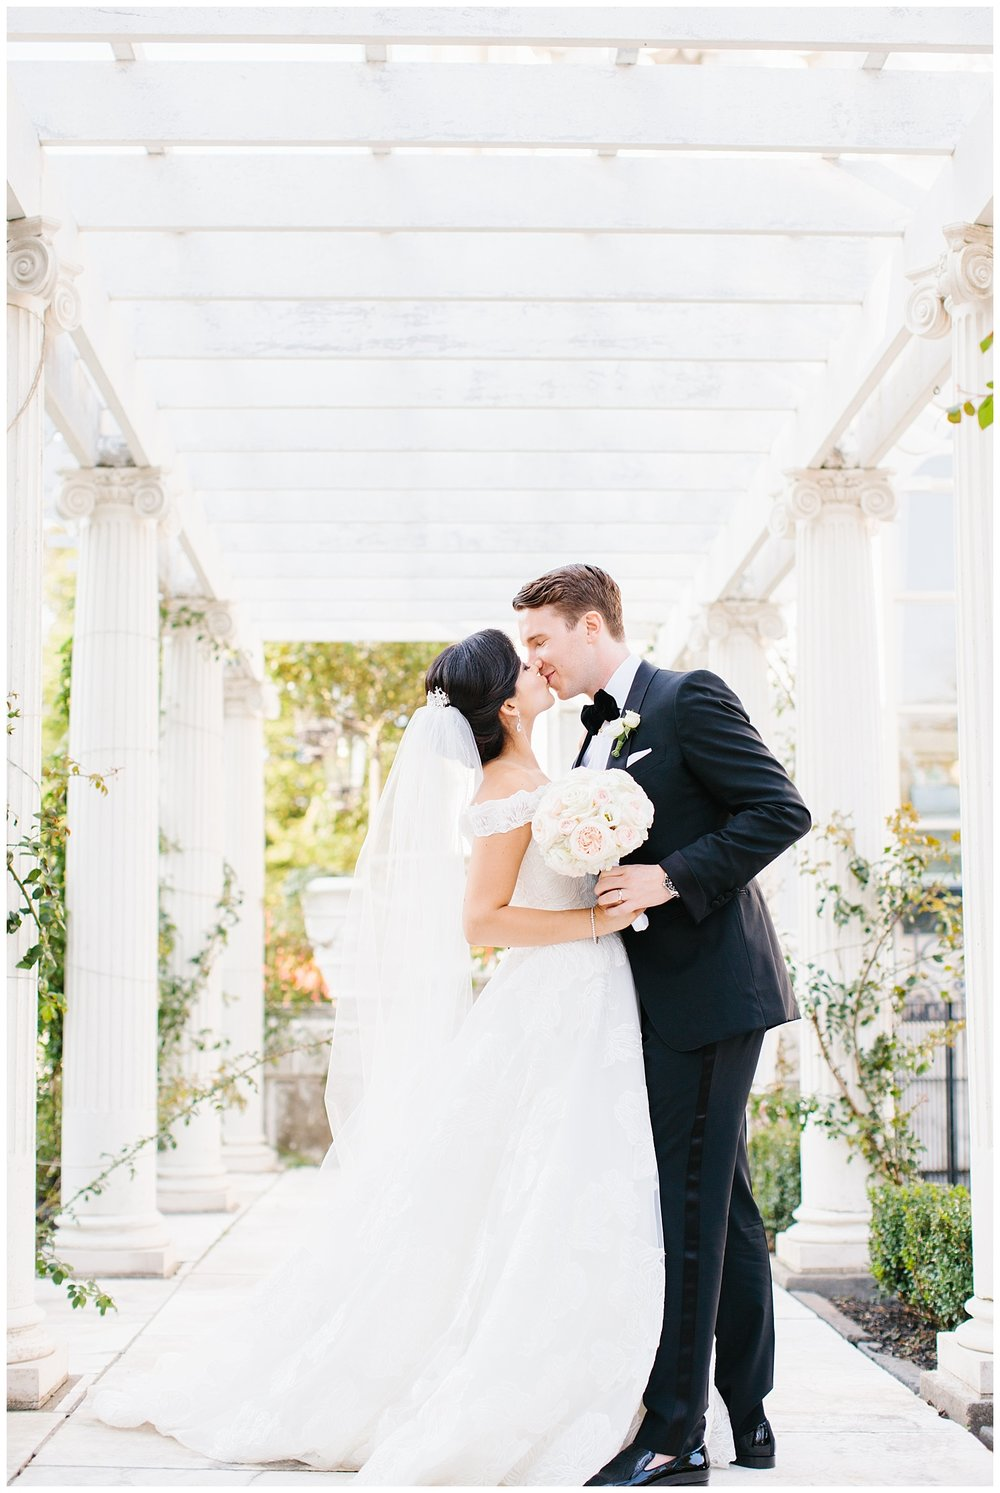 Stephen_Nathalie_Rosecliff_Mansion_Wedding_010.jpeg